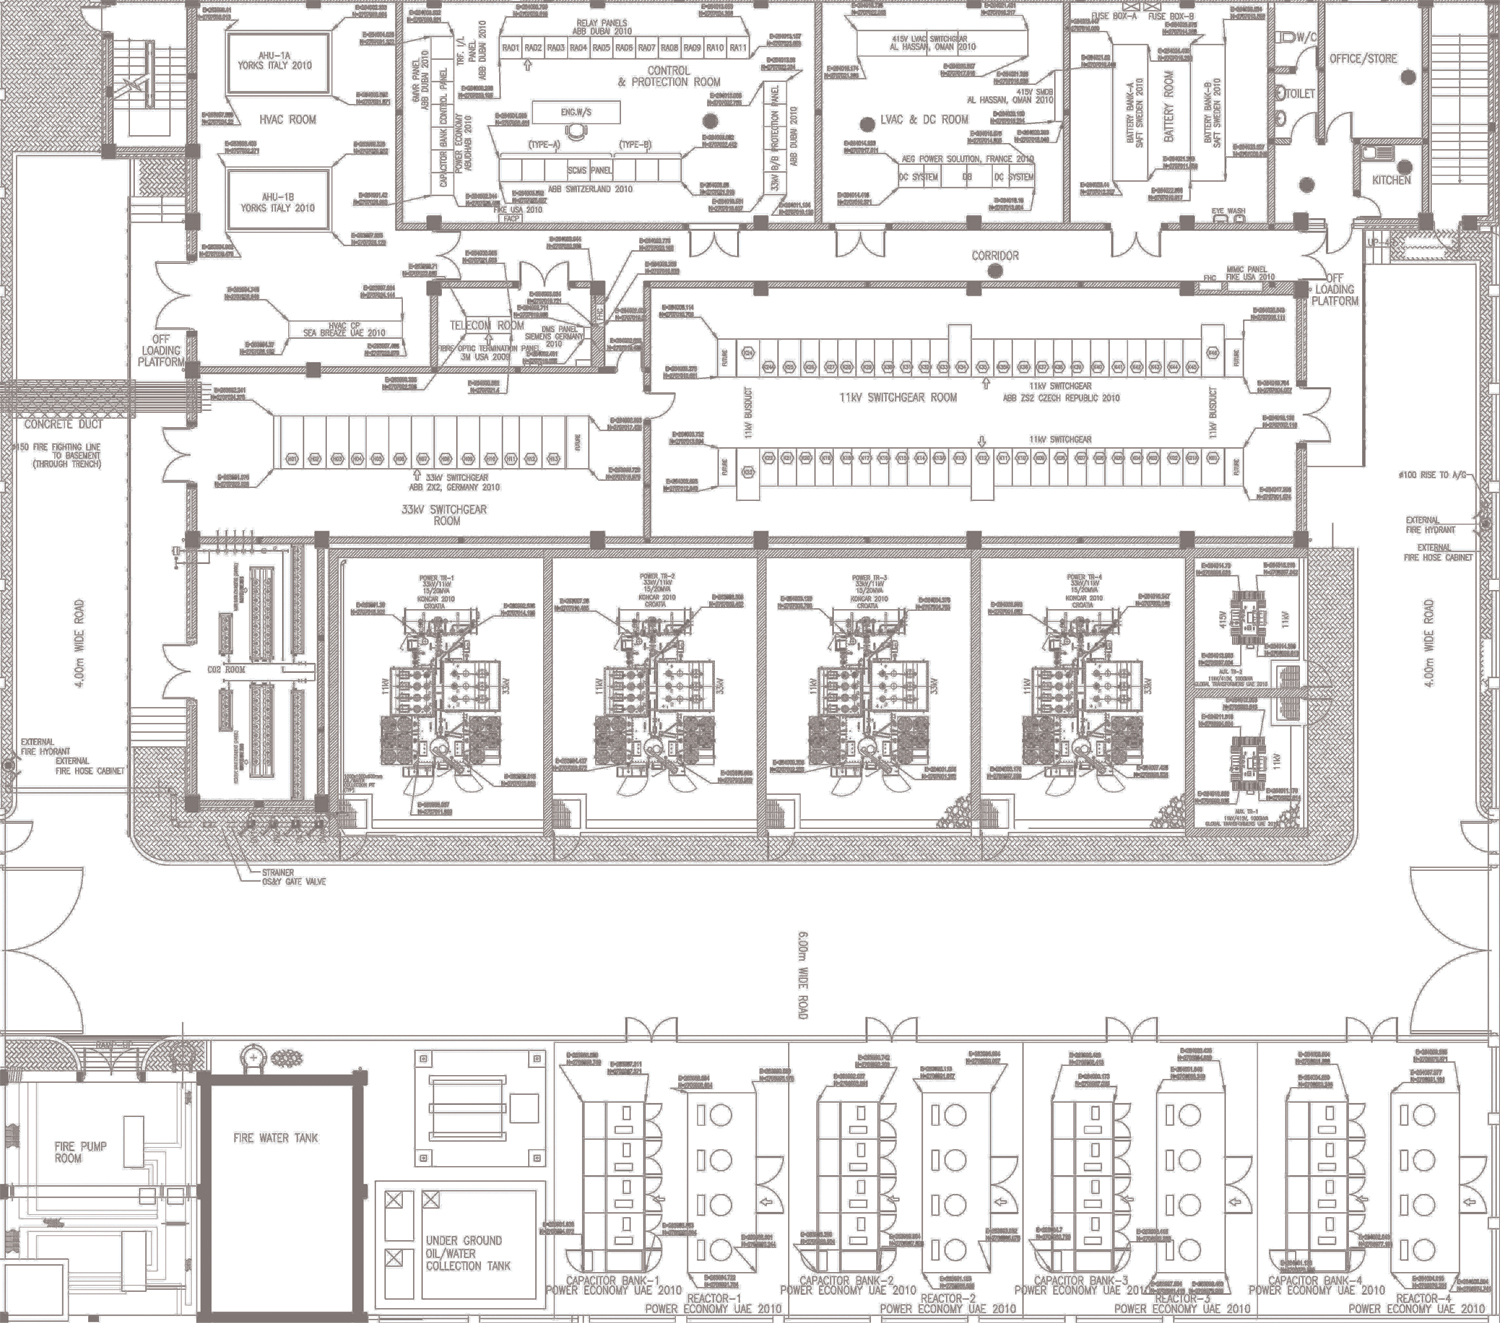 Electrical substation layout images for Substation pdf